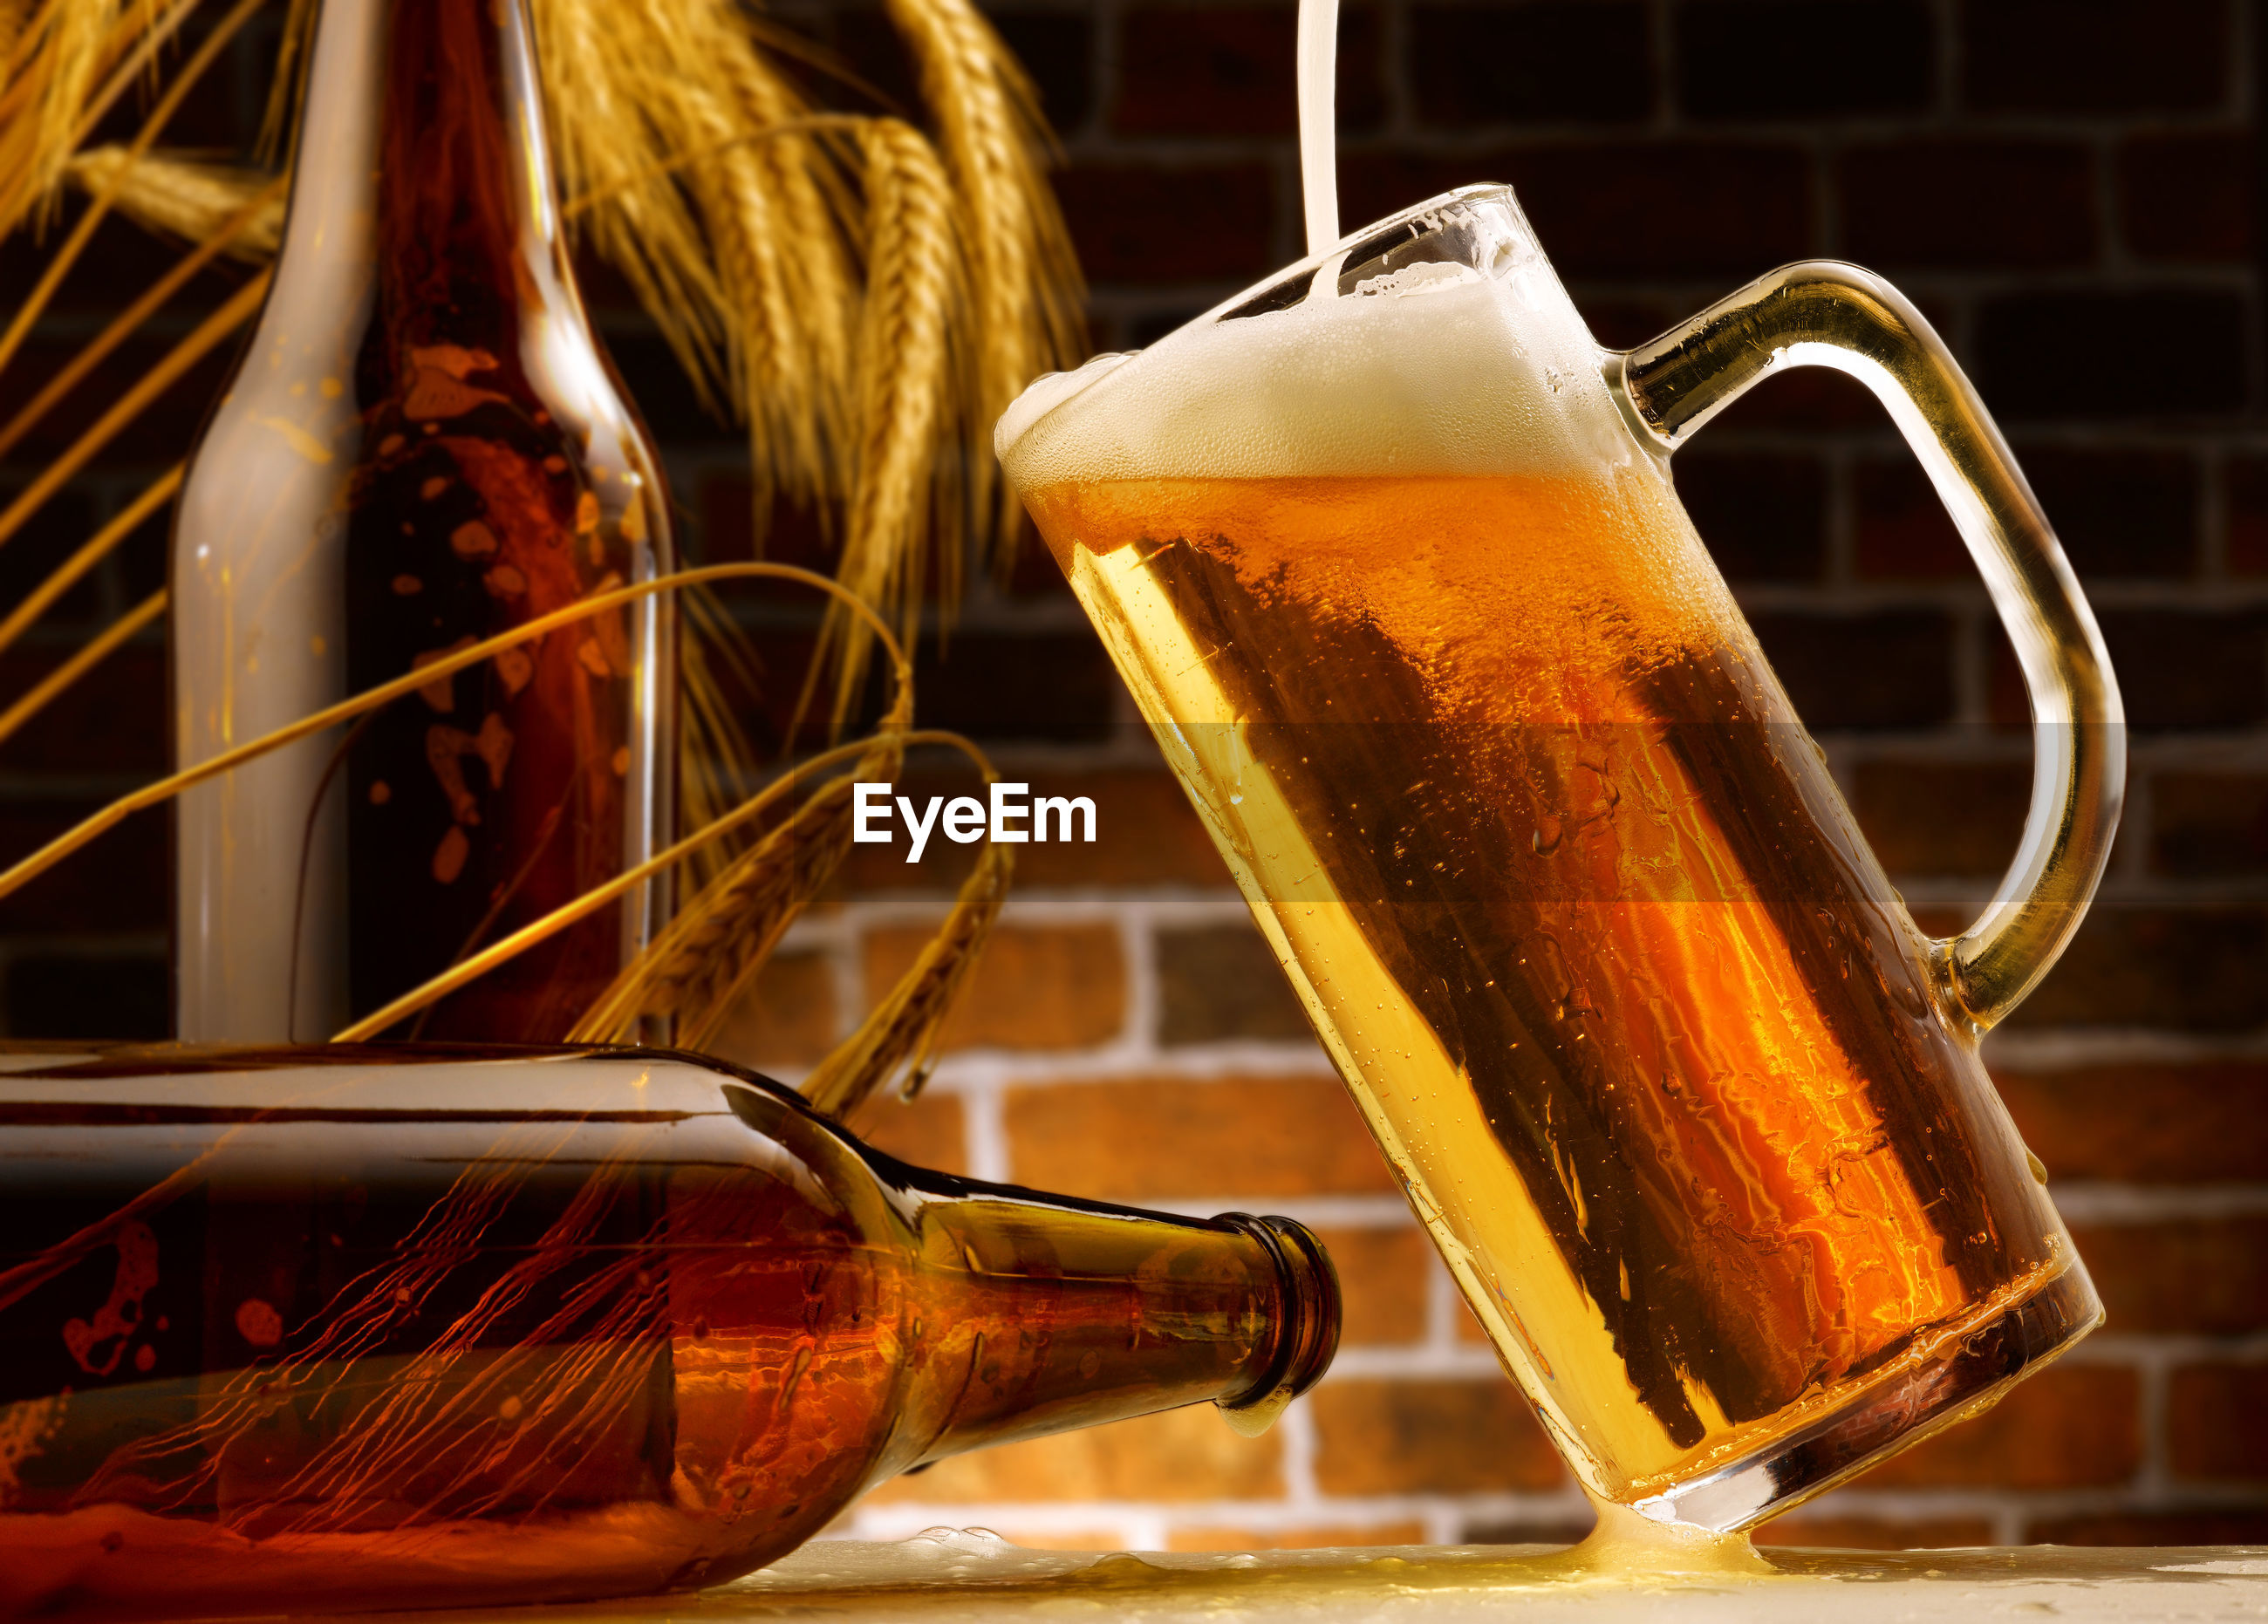 CLOSE-UP OF BEER GLASS ON TABLE AGAINST BRIGHT LIGHT